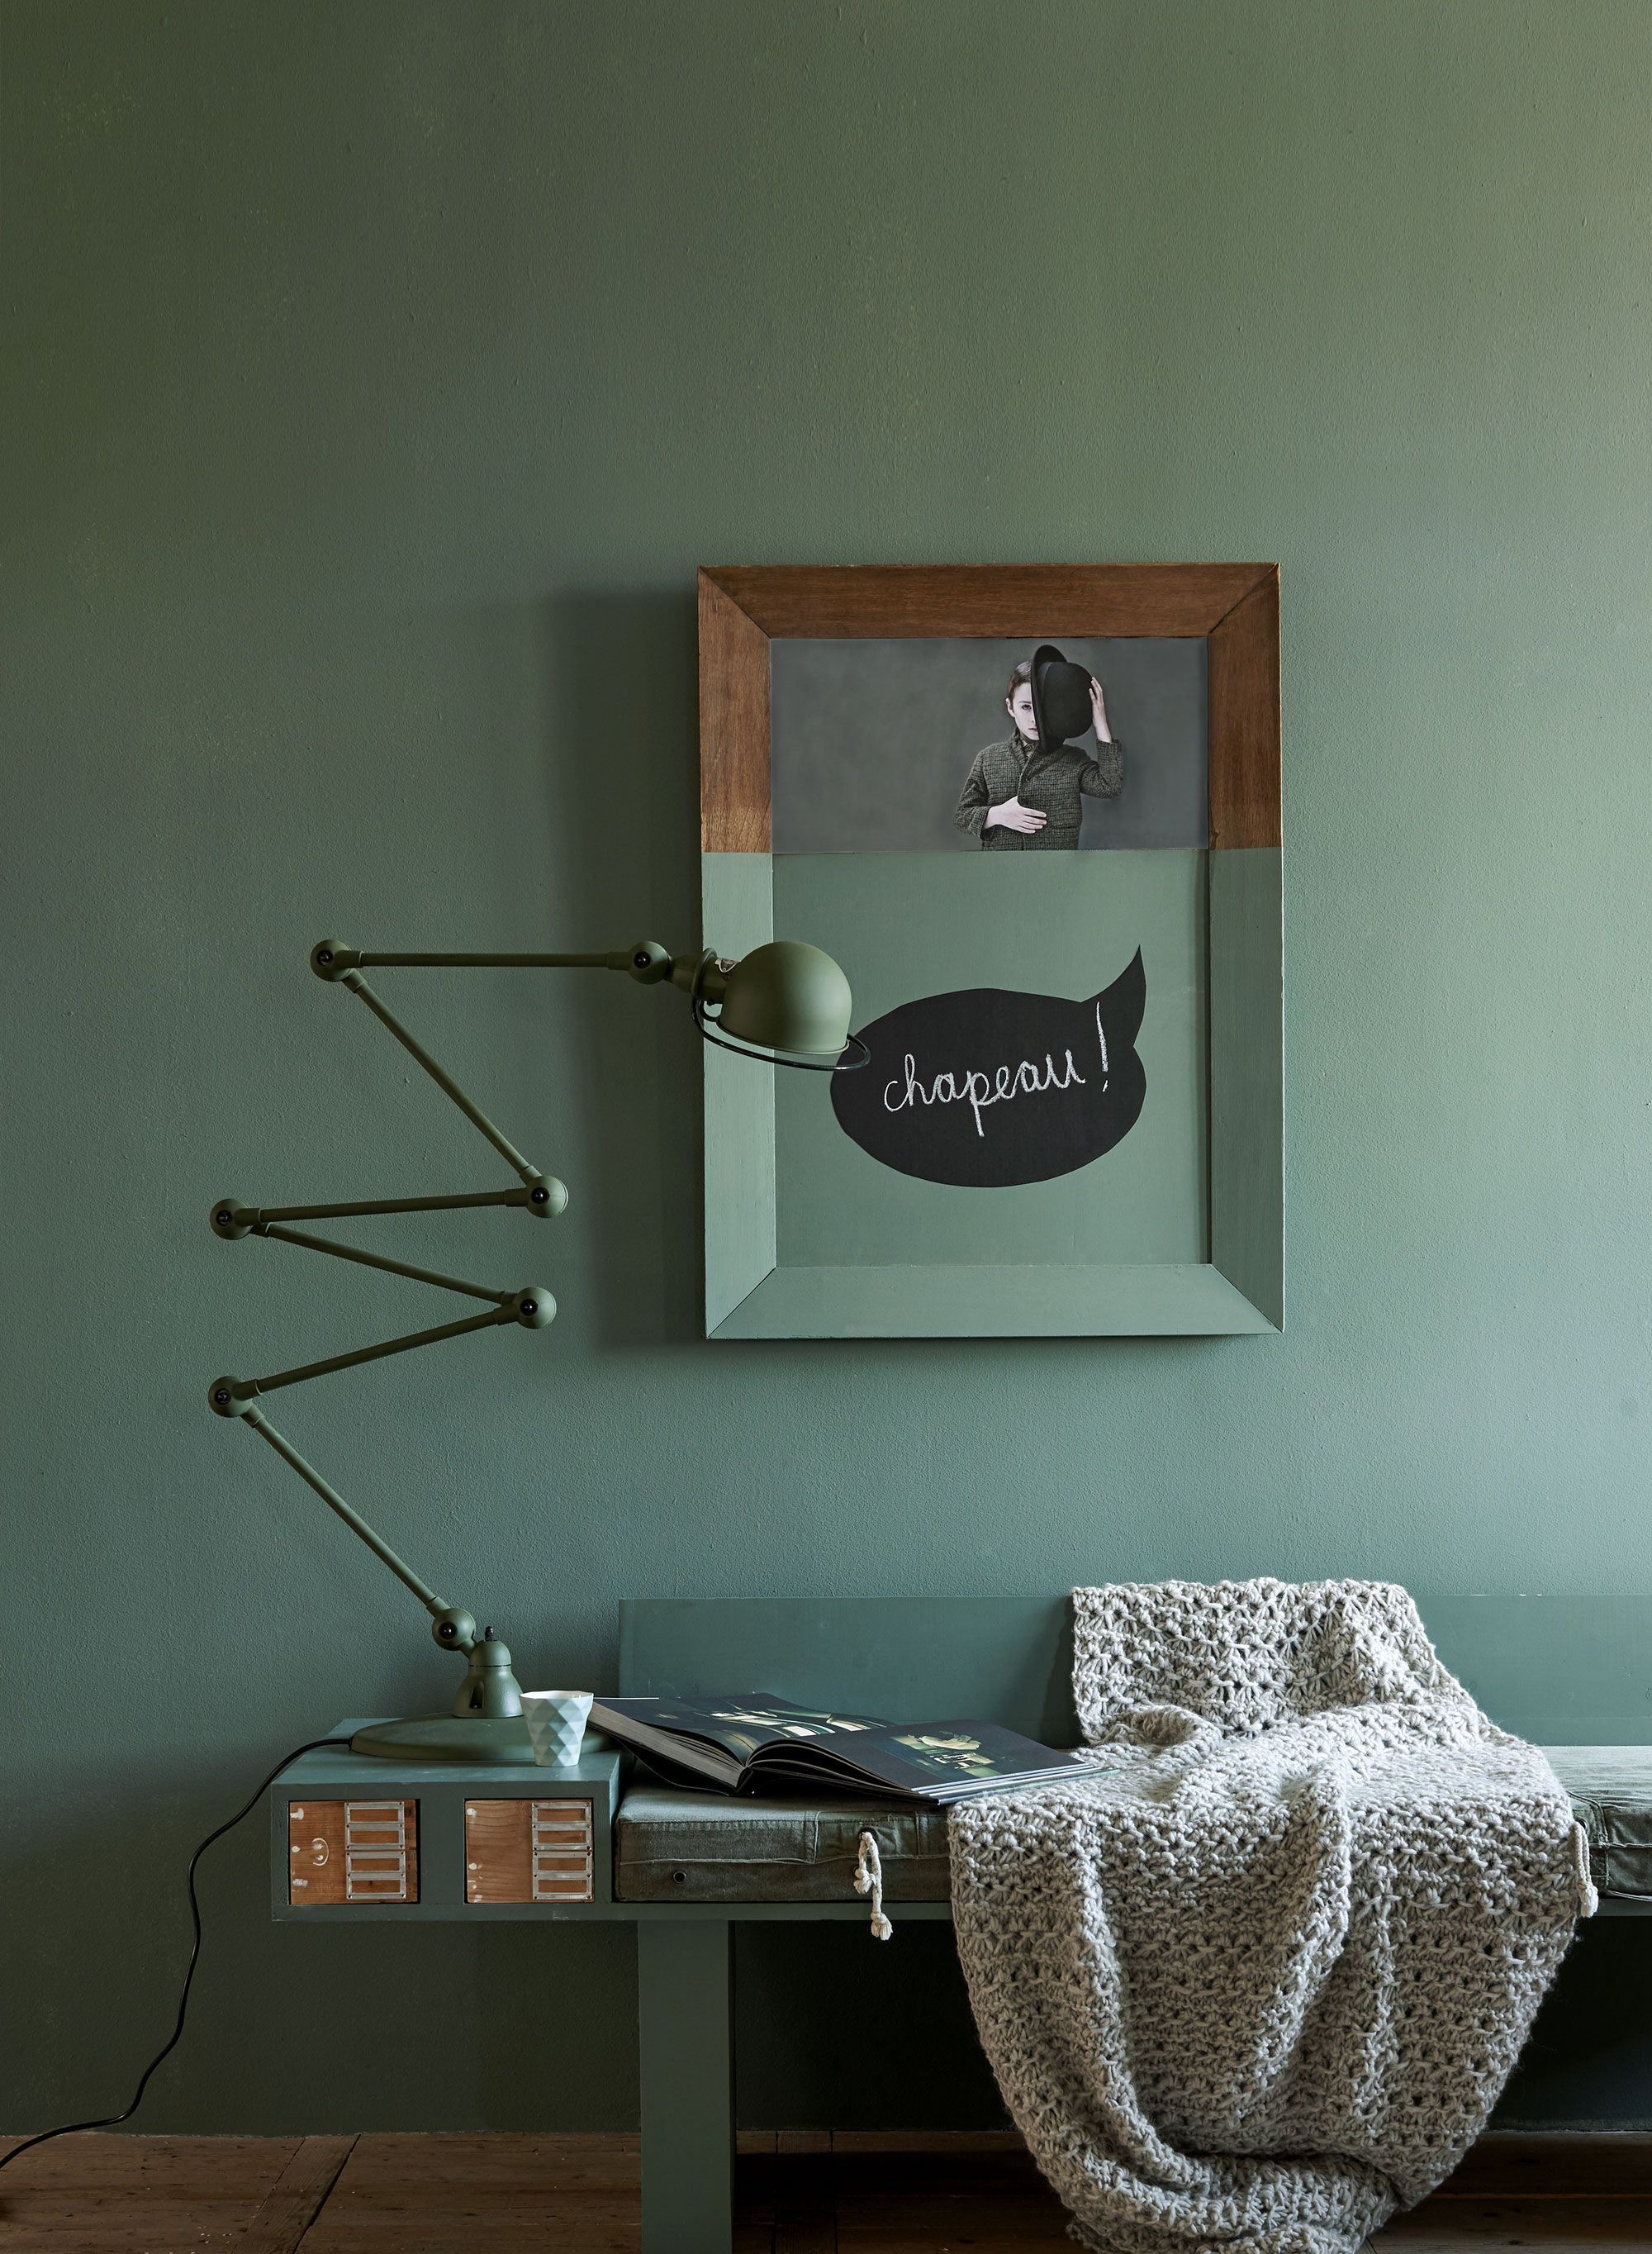 Green wall with halfpainted frame and green desk lamp